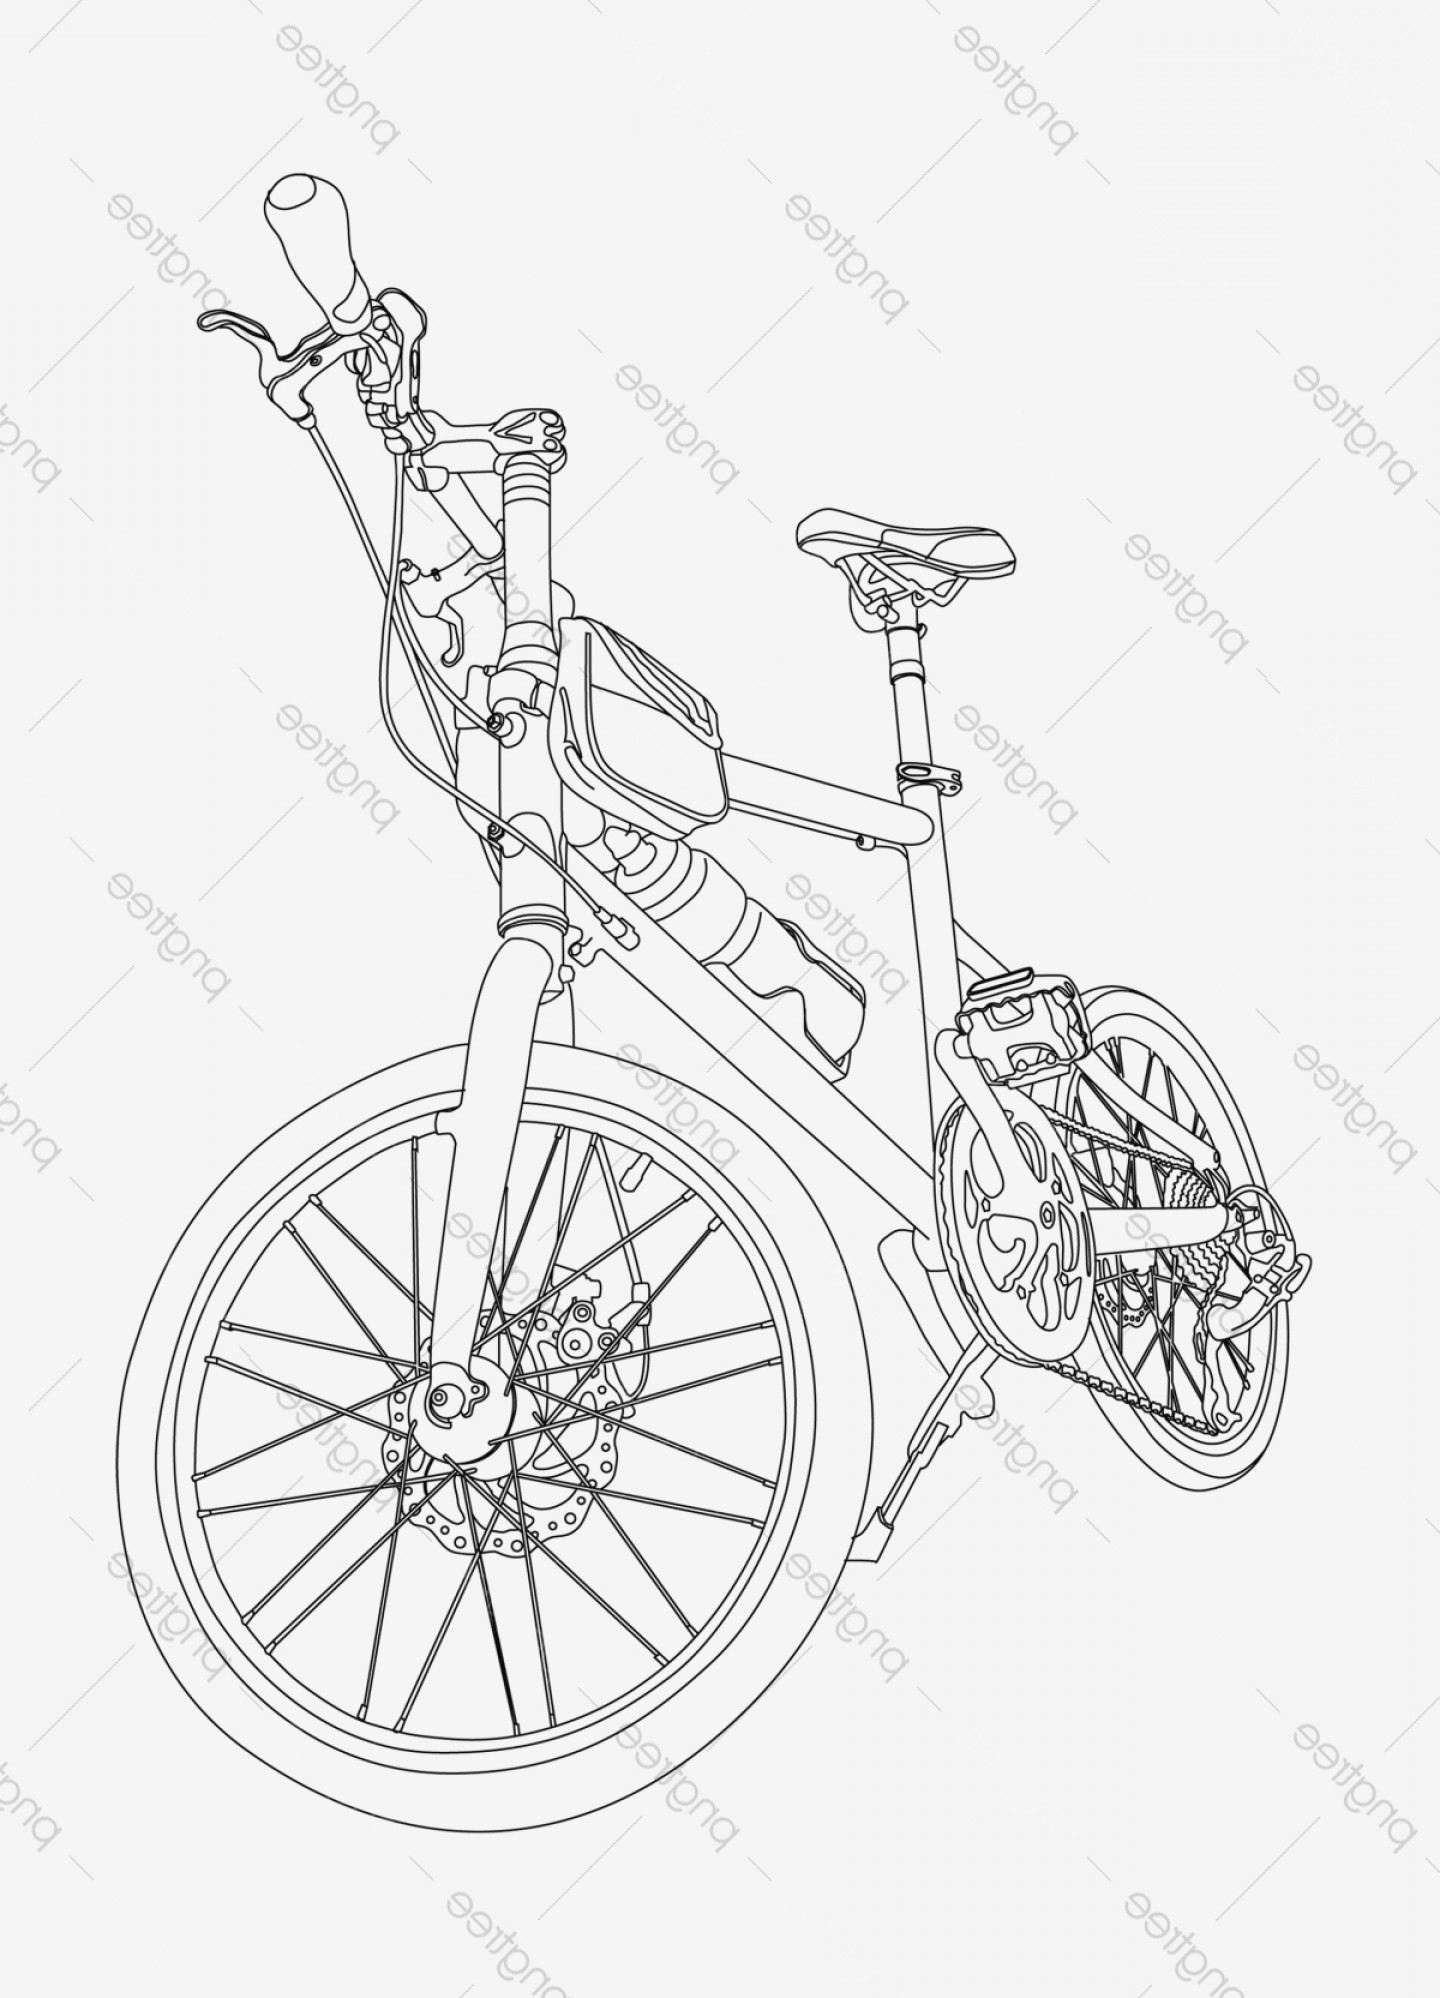 BMX Bike Tire Vector: Stick Figure Line Drawing Bmx Bicycle